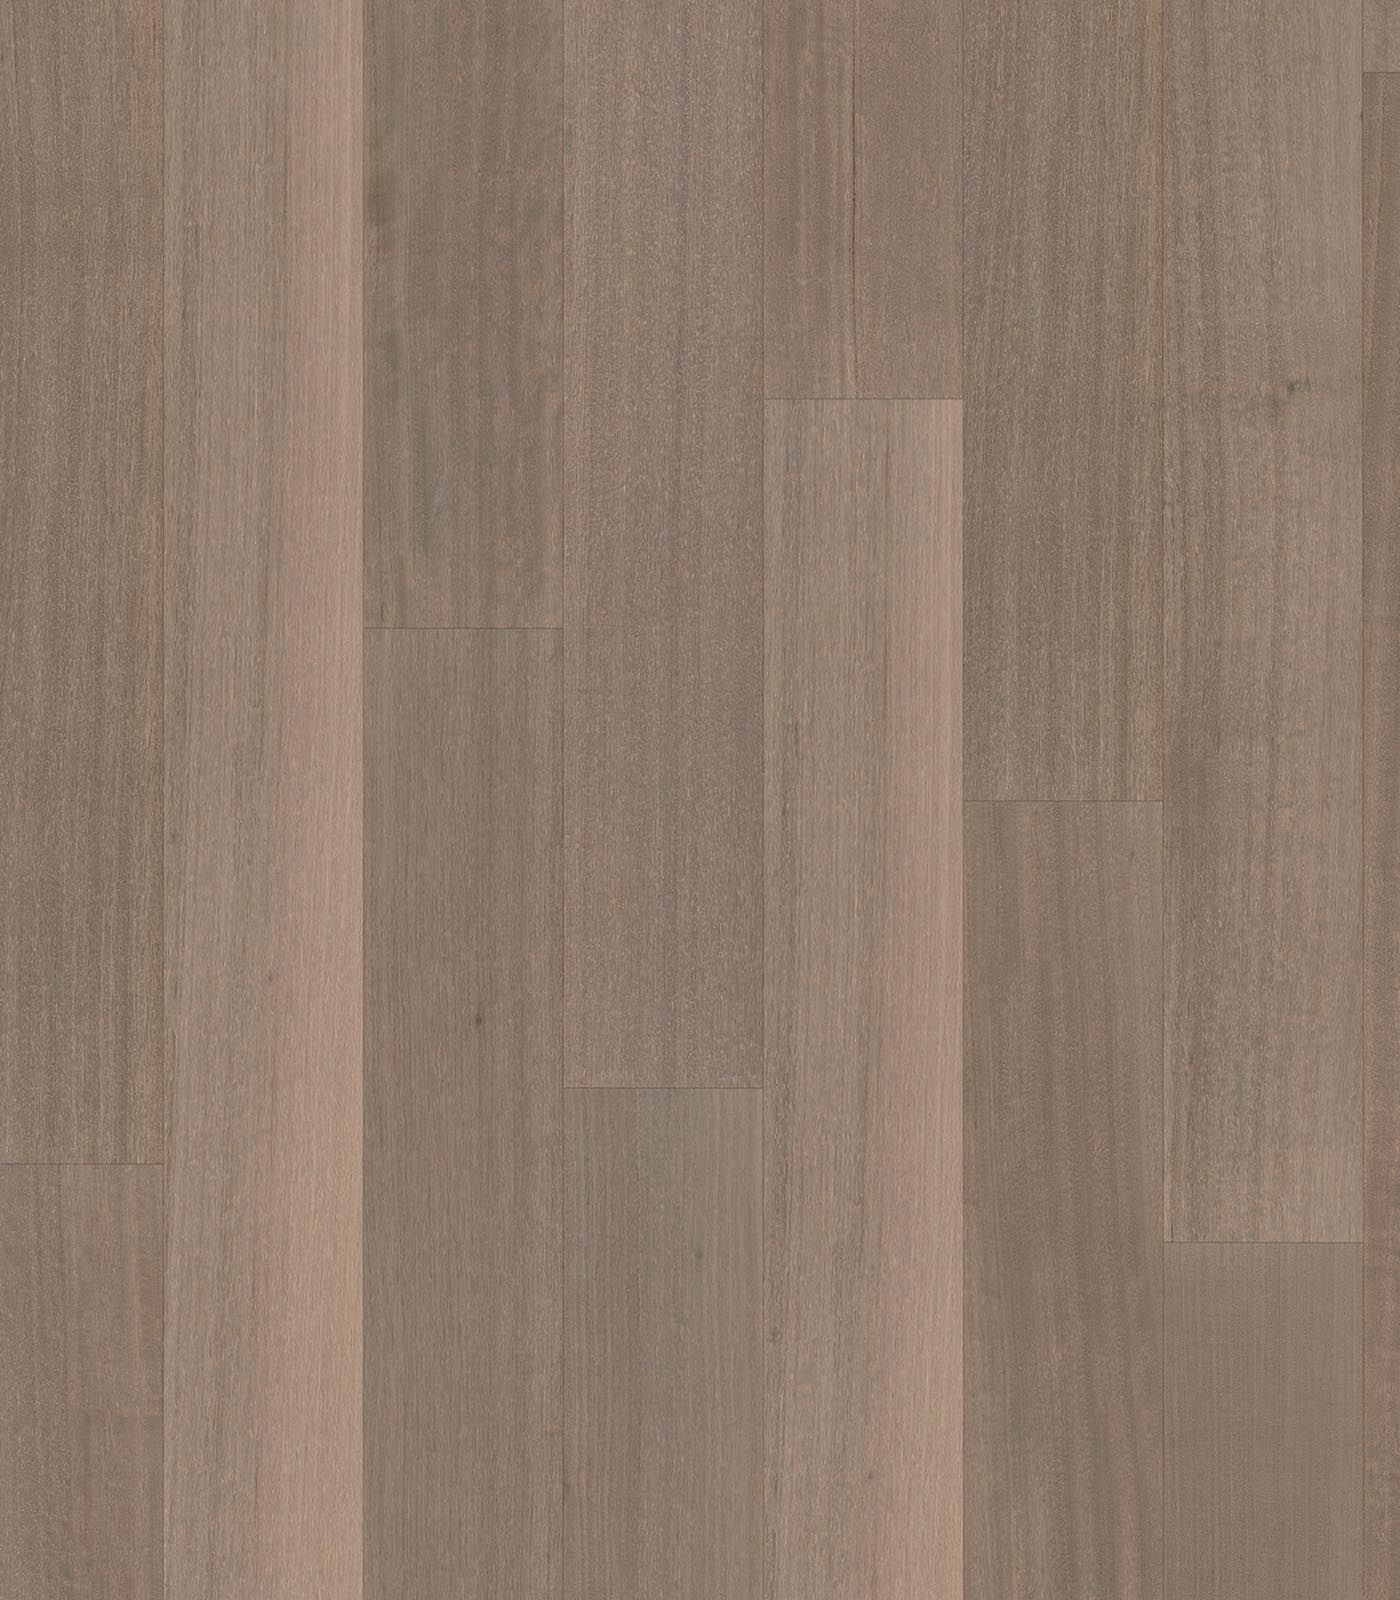 Gold Coast-After Oak Collection-Tasmanian Oak floors